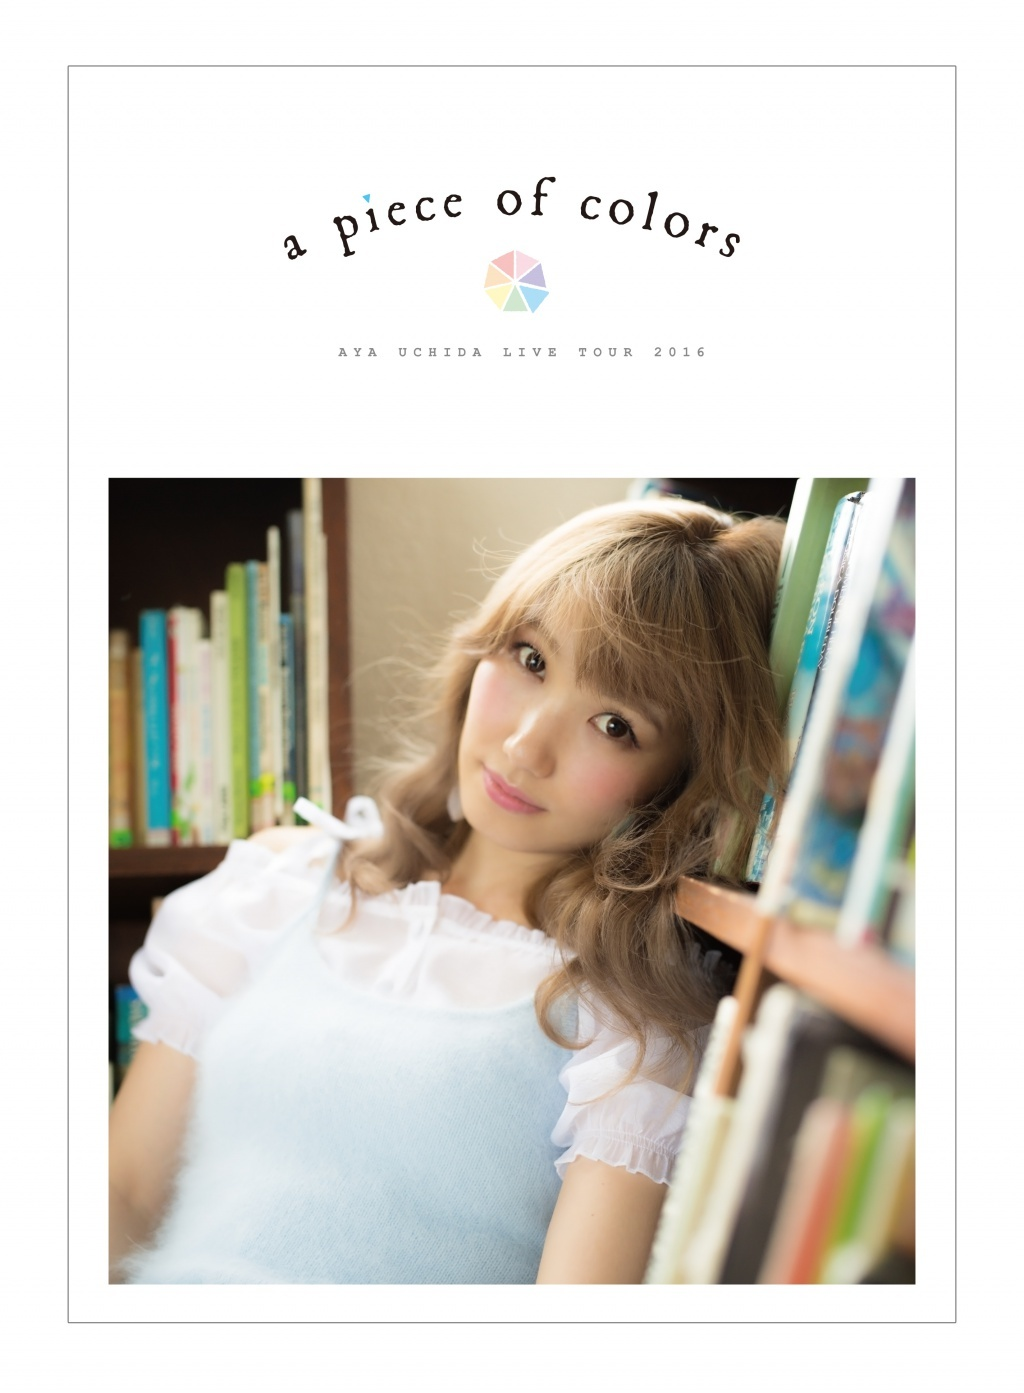 AYA UCHIDA LIVE TOUR 2016 ~a piece of colors~ パンフレット